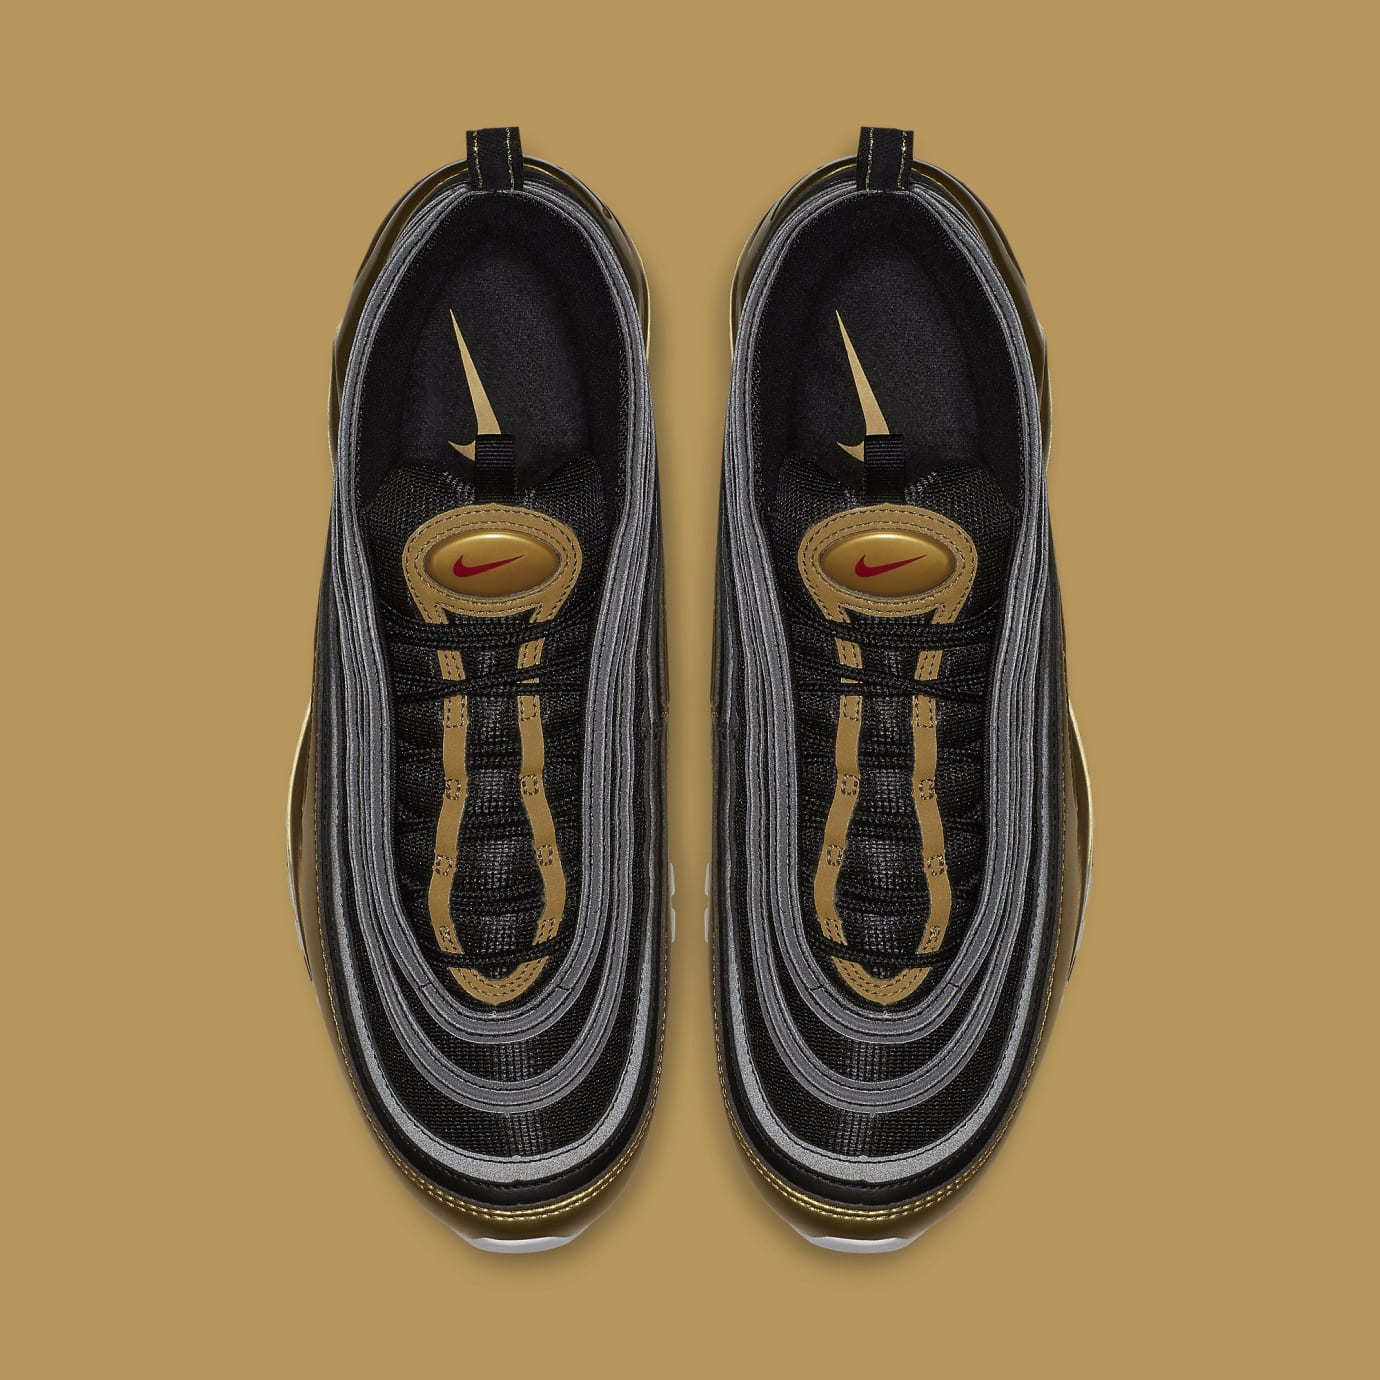 Nike Air Max 97 'Black/Metallic Gold' AT5458-002 (Top)